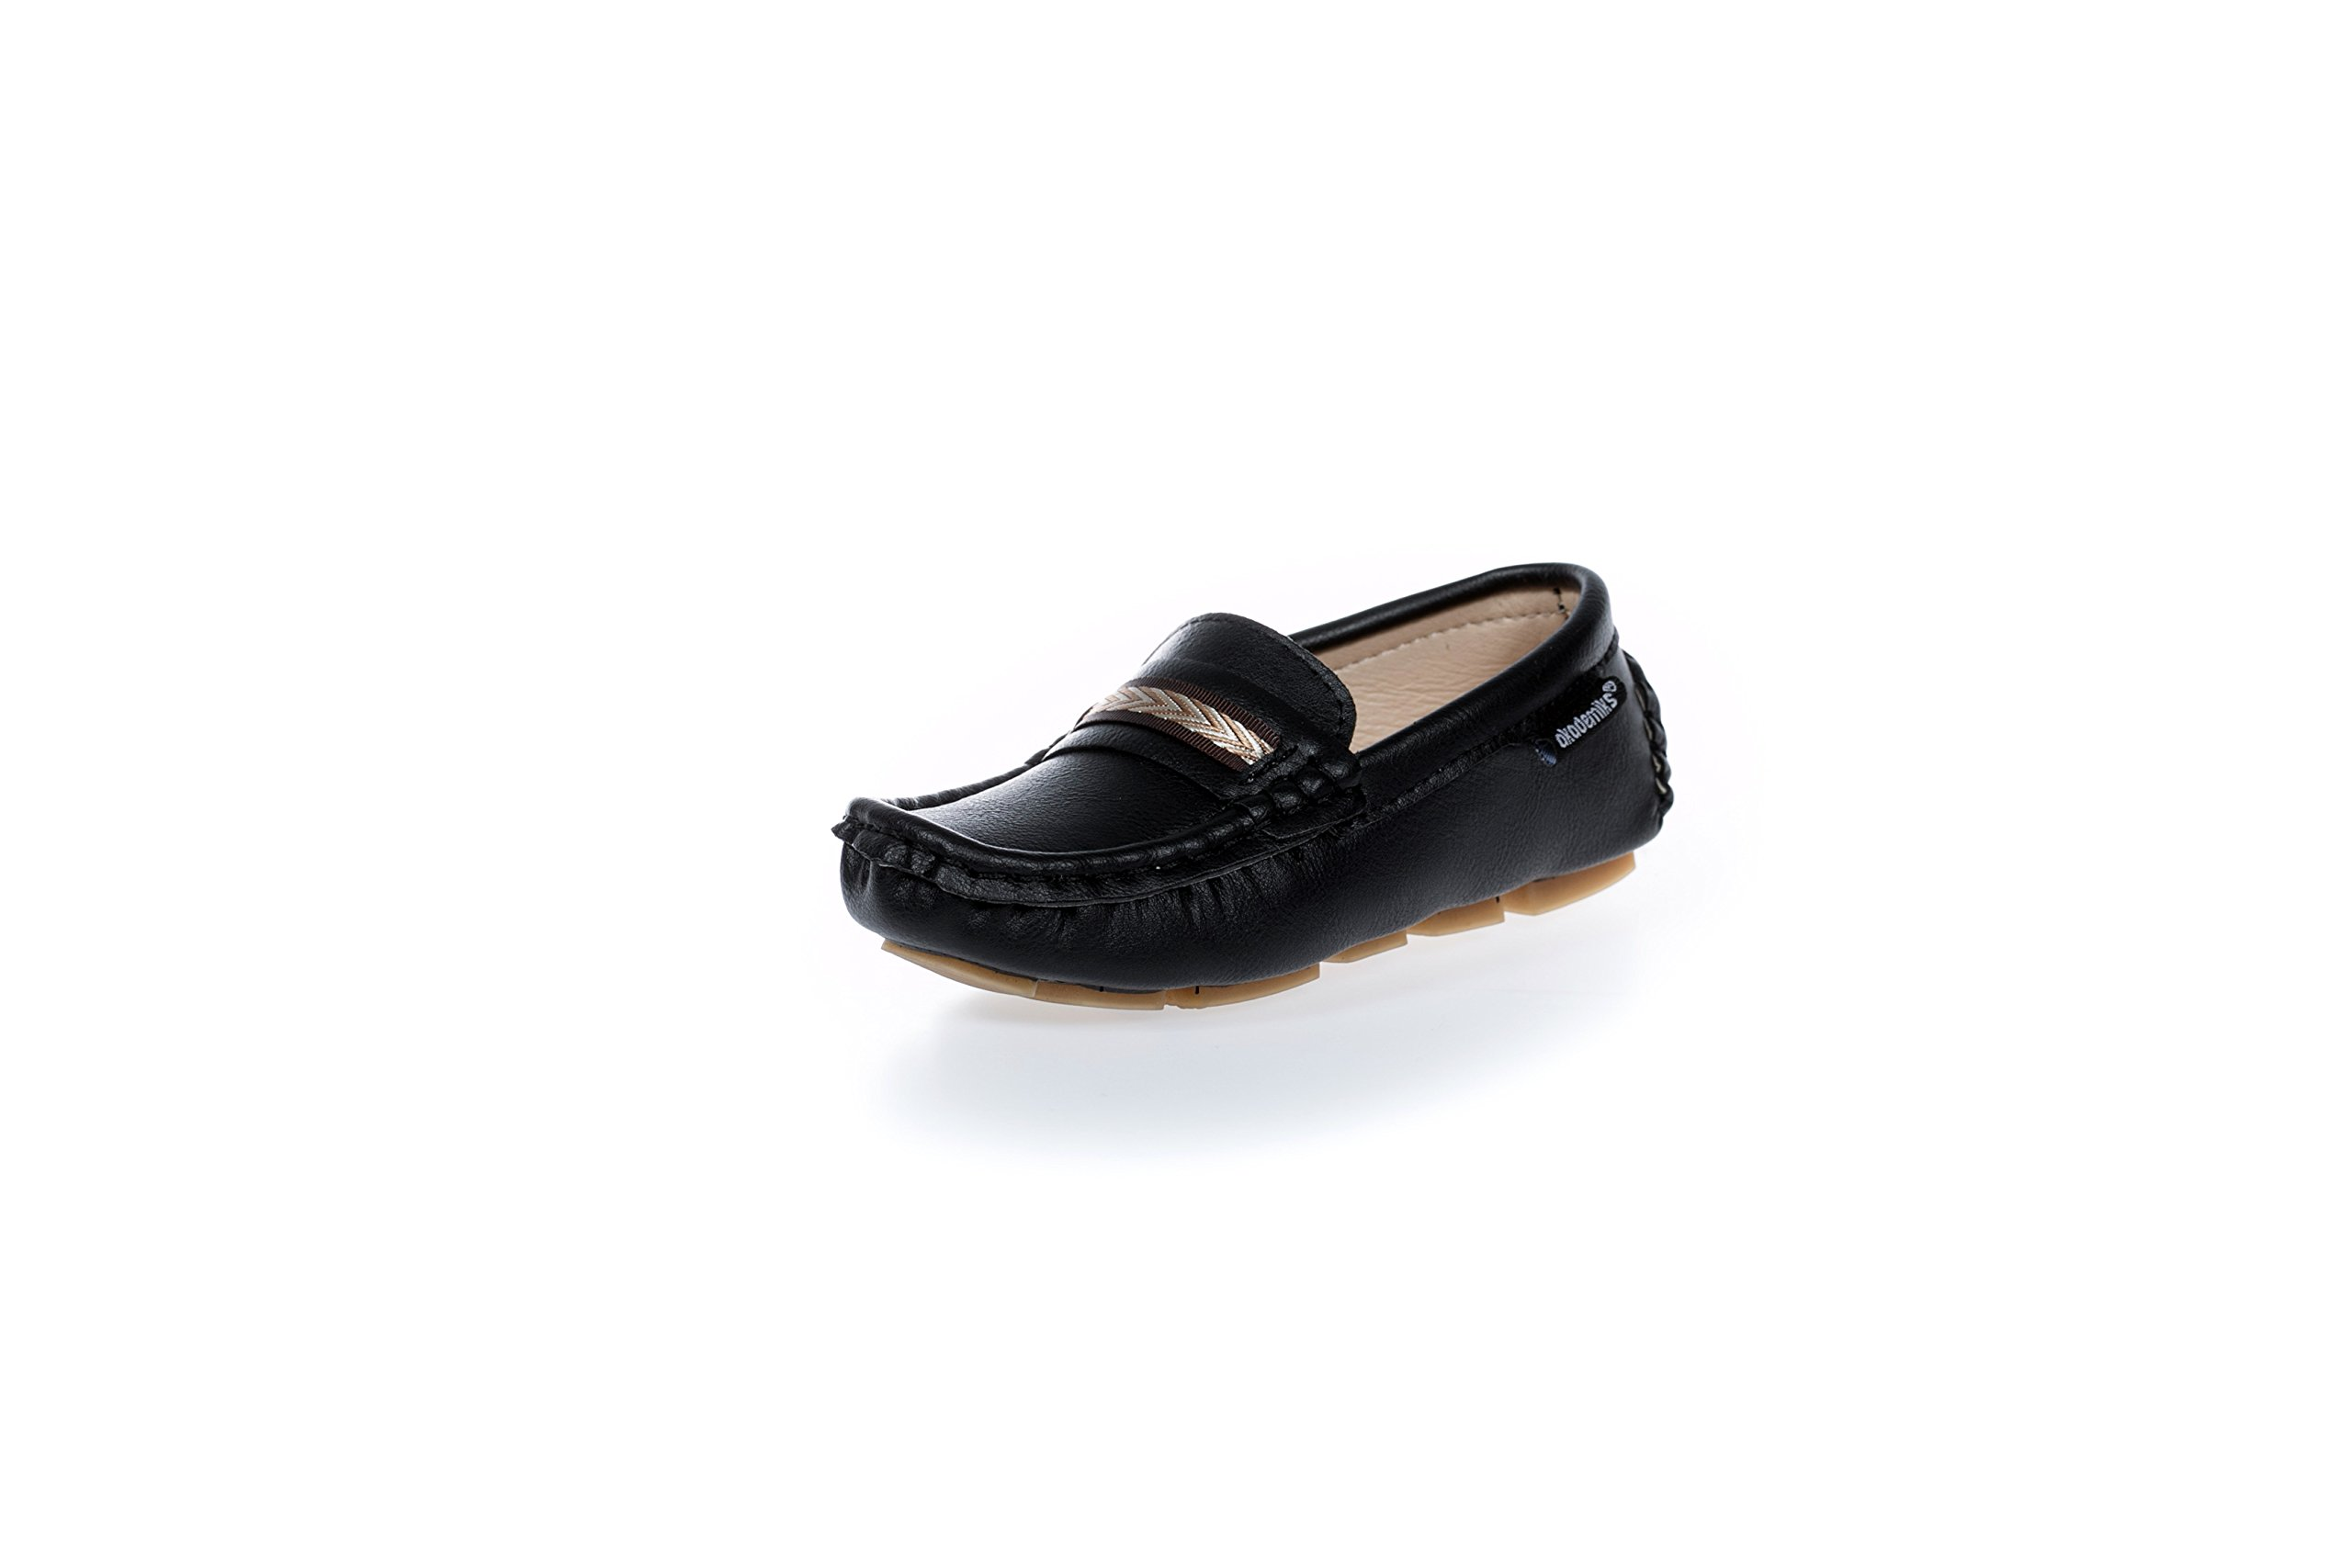 Akademiks Casual Shoes for Boys, Available in